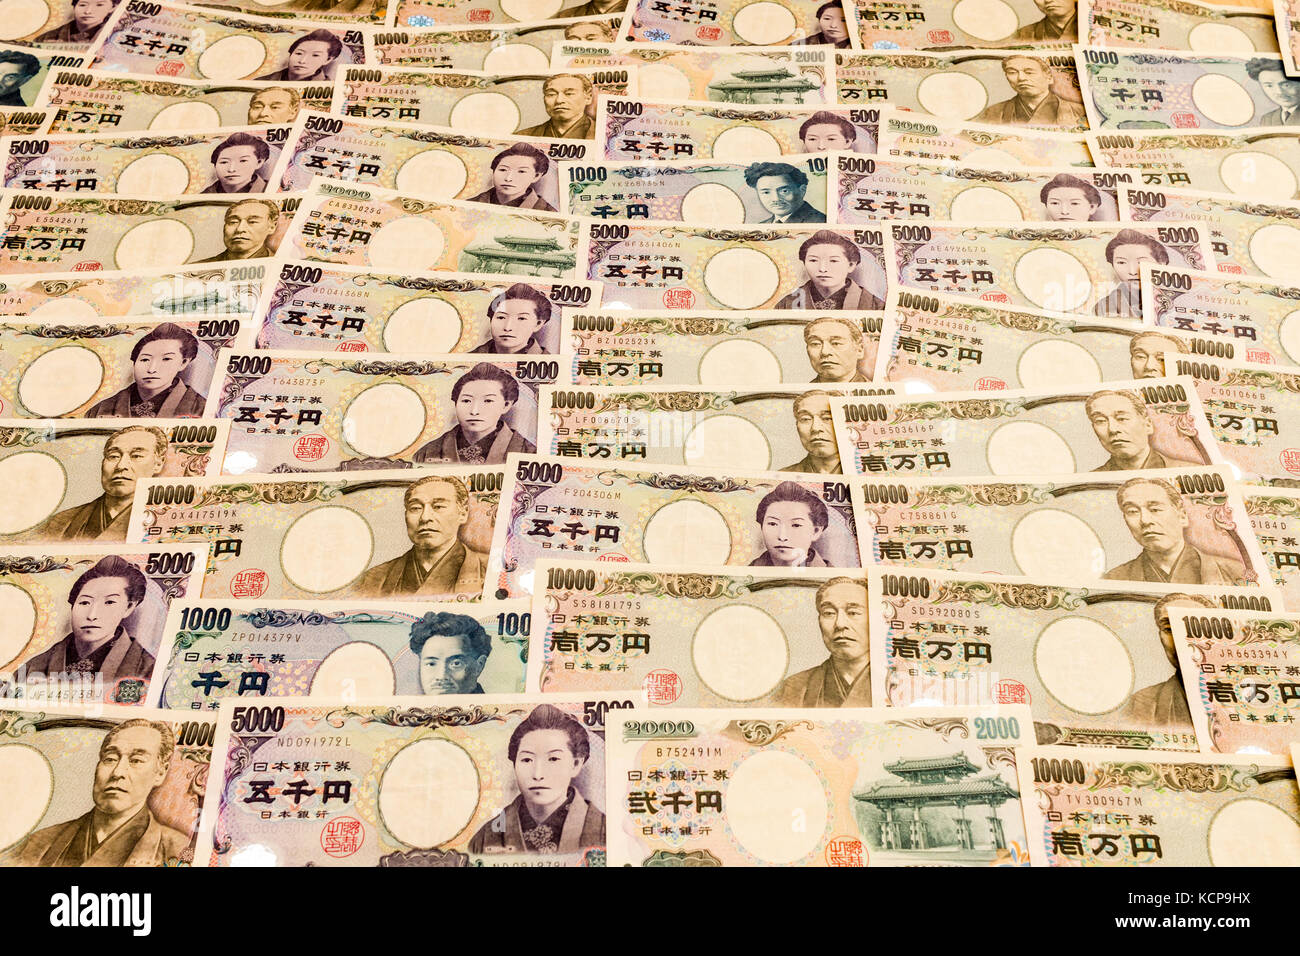 Japanese banknotes of various amounts laid out forming background. - Stock Image